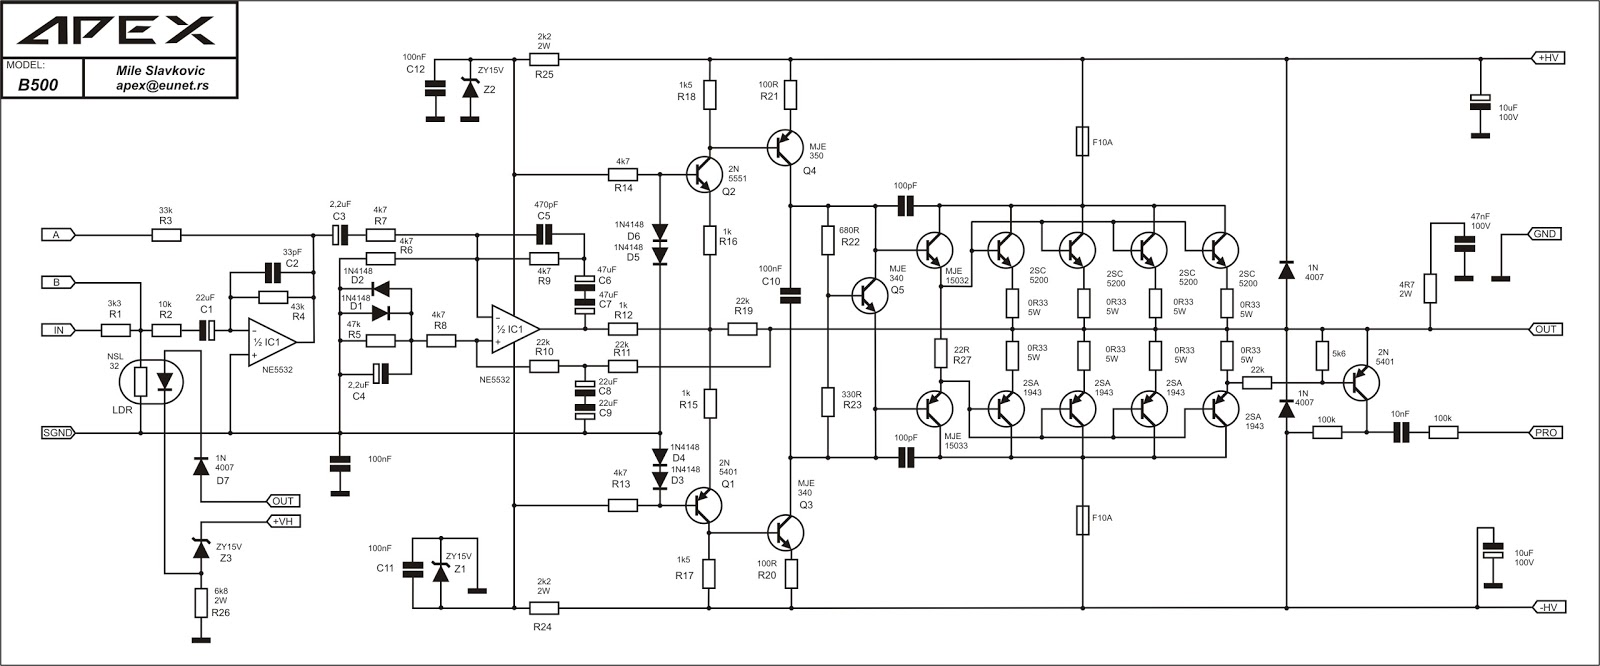 kenwood 2000 watt amp wiring diagram with Skema Skema  Lifier Ini Adalah on Aftermarket Radio Factory   Wiring Help 75961 in addition Schematics in addition Lm2896 Audio Booster moreover 3280537 Post9 together with Skema Skema  lifier Ini Adalah.